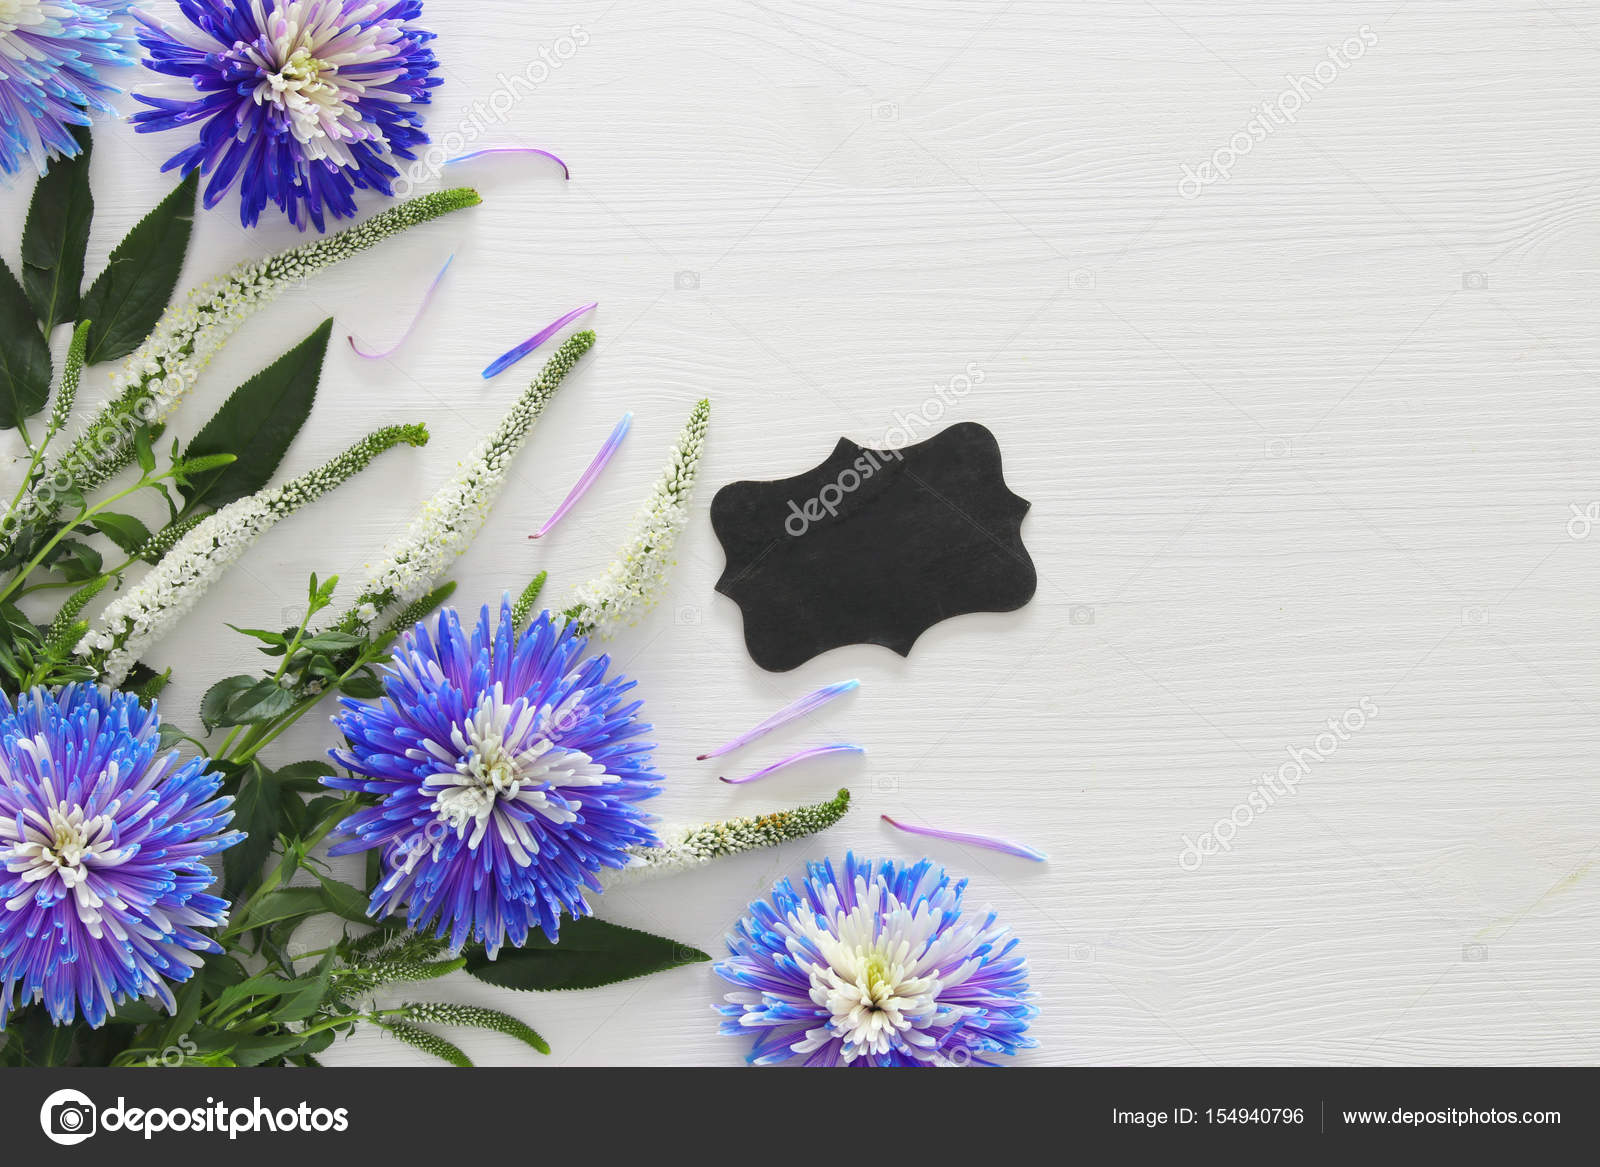 Blue And White Flowers Arrangement And Blackboard Stock Photo